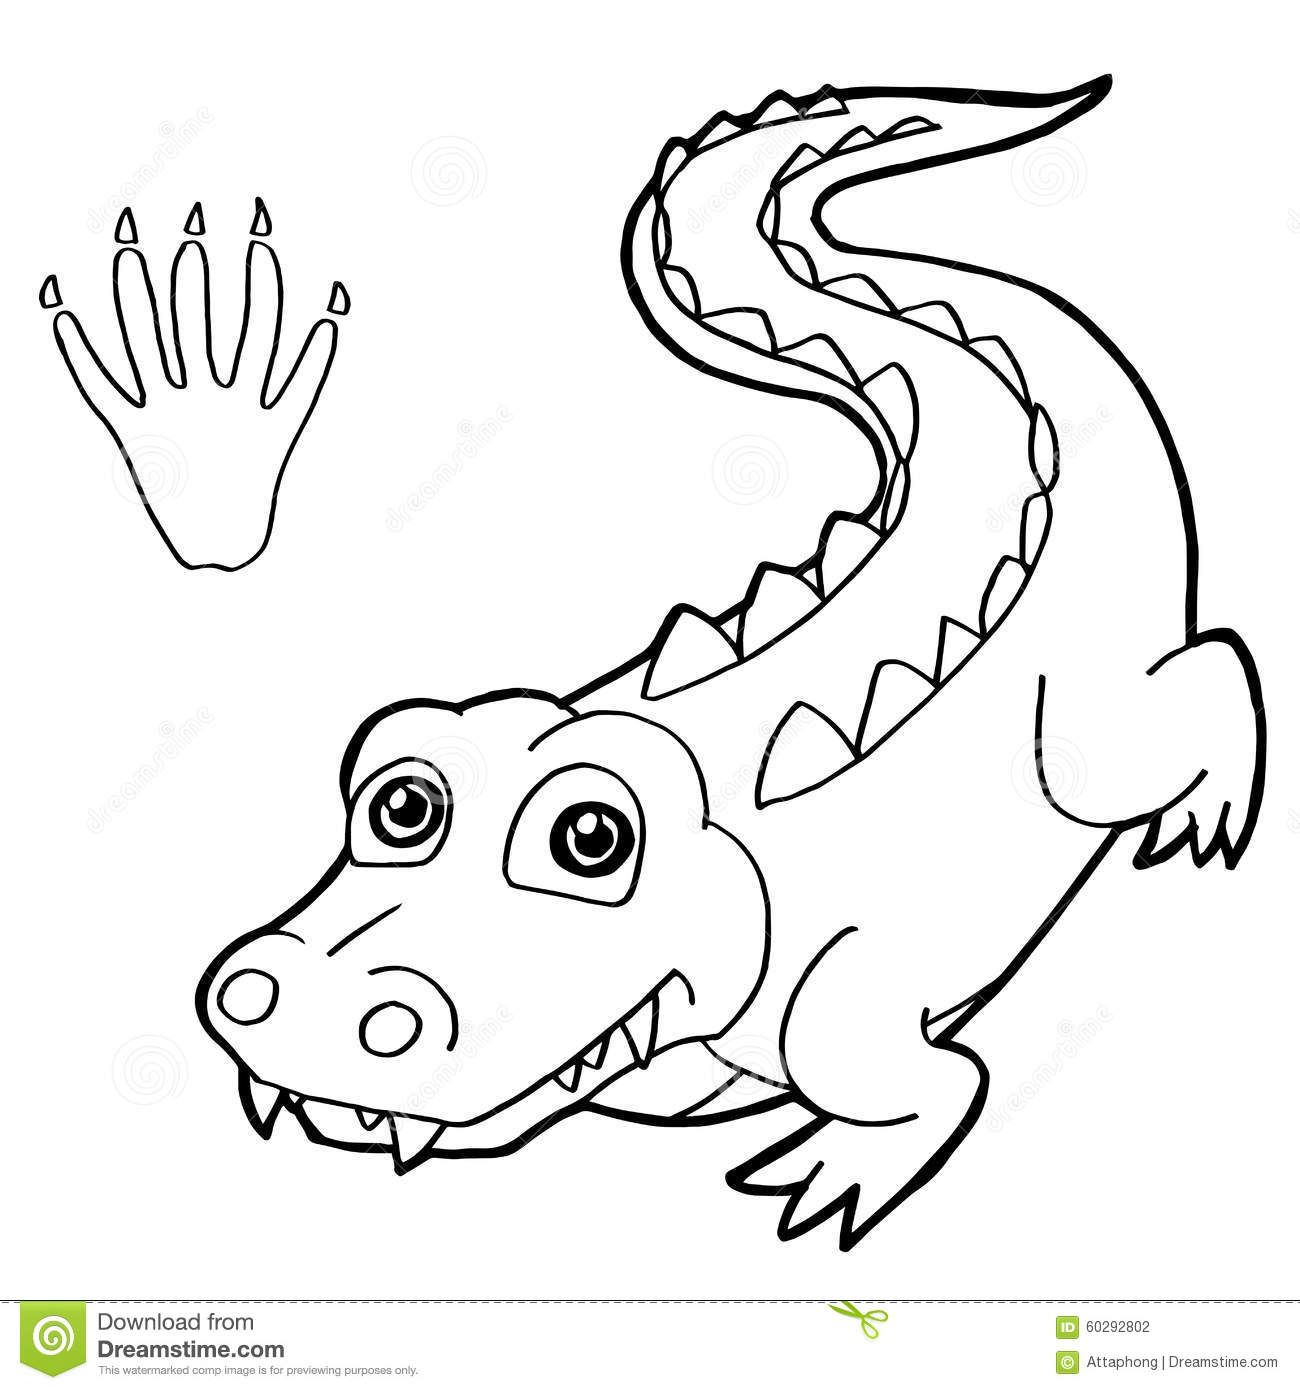 crocodile pictures to color alligator coloring pages to pictures color crocodile